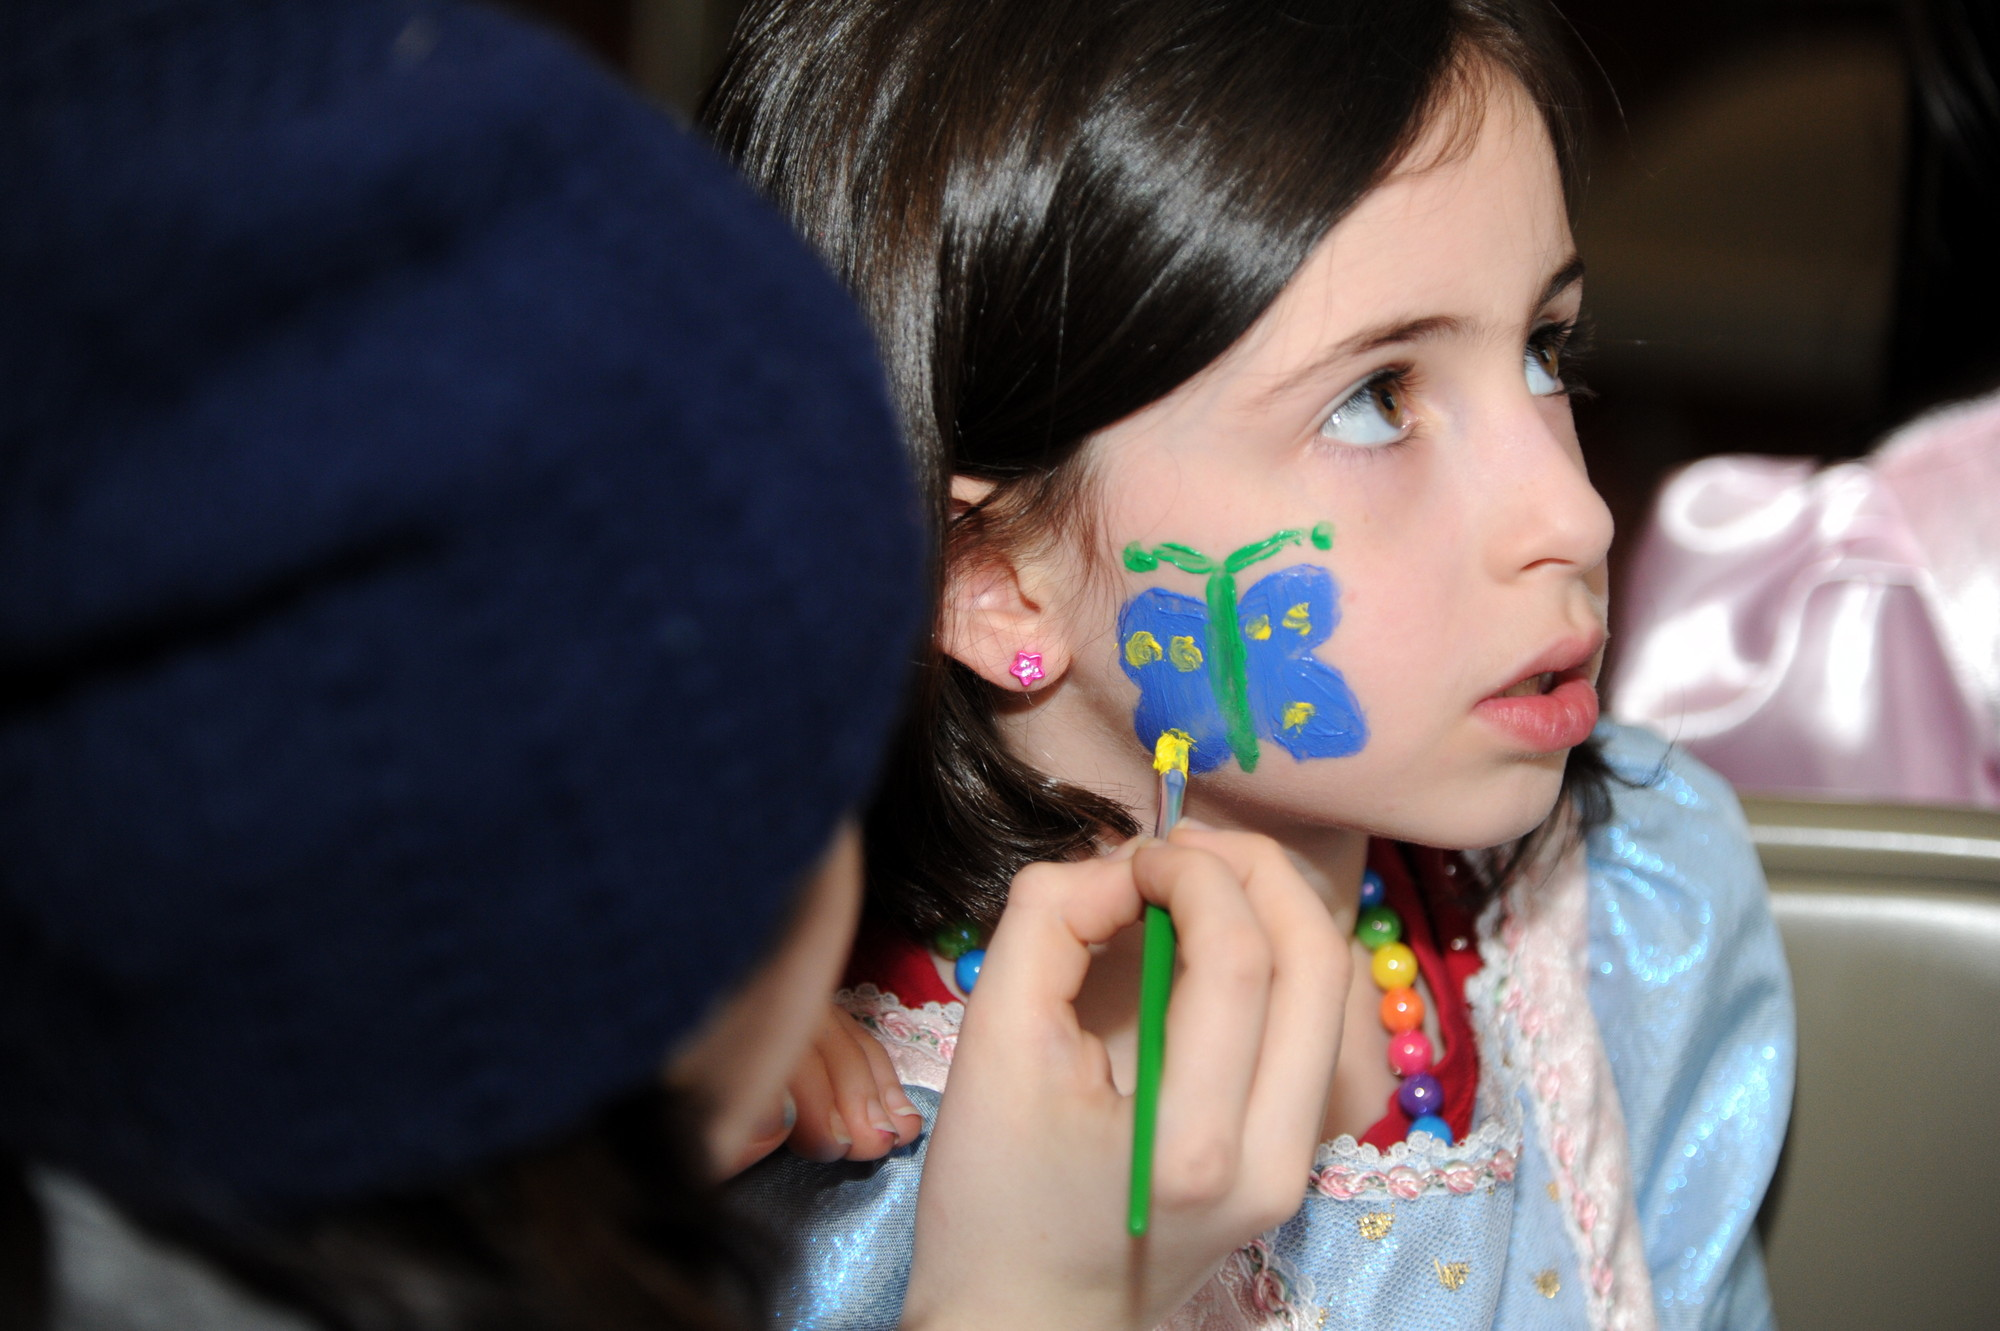 Talya Lippman, 7, had her face painted.